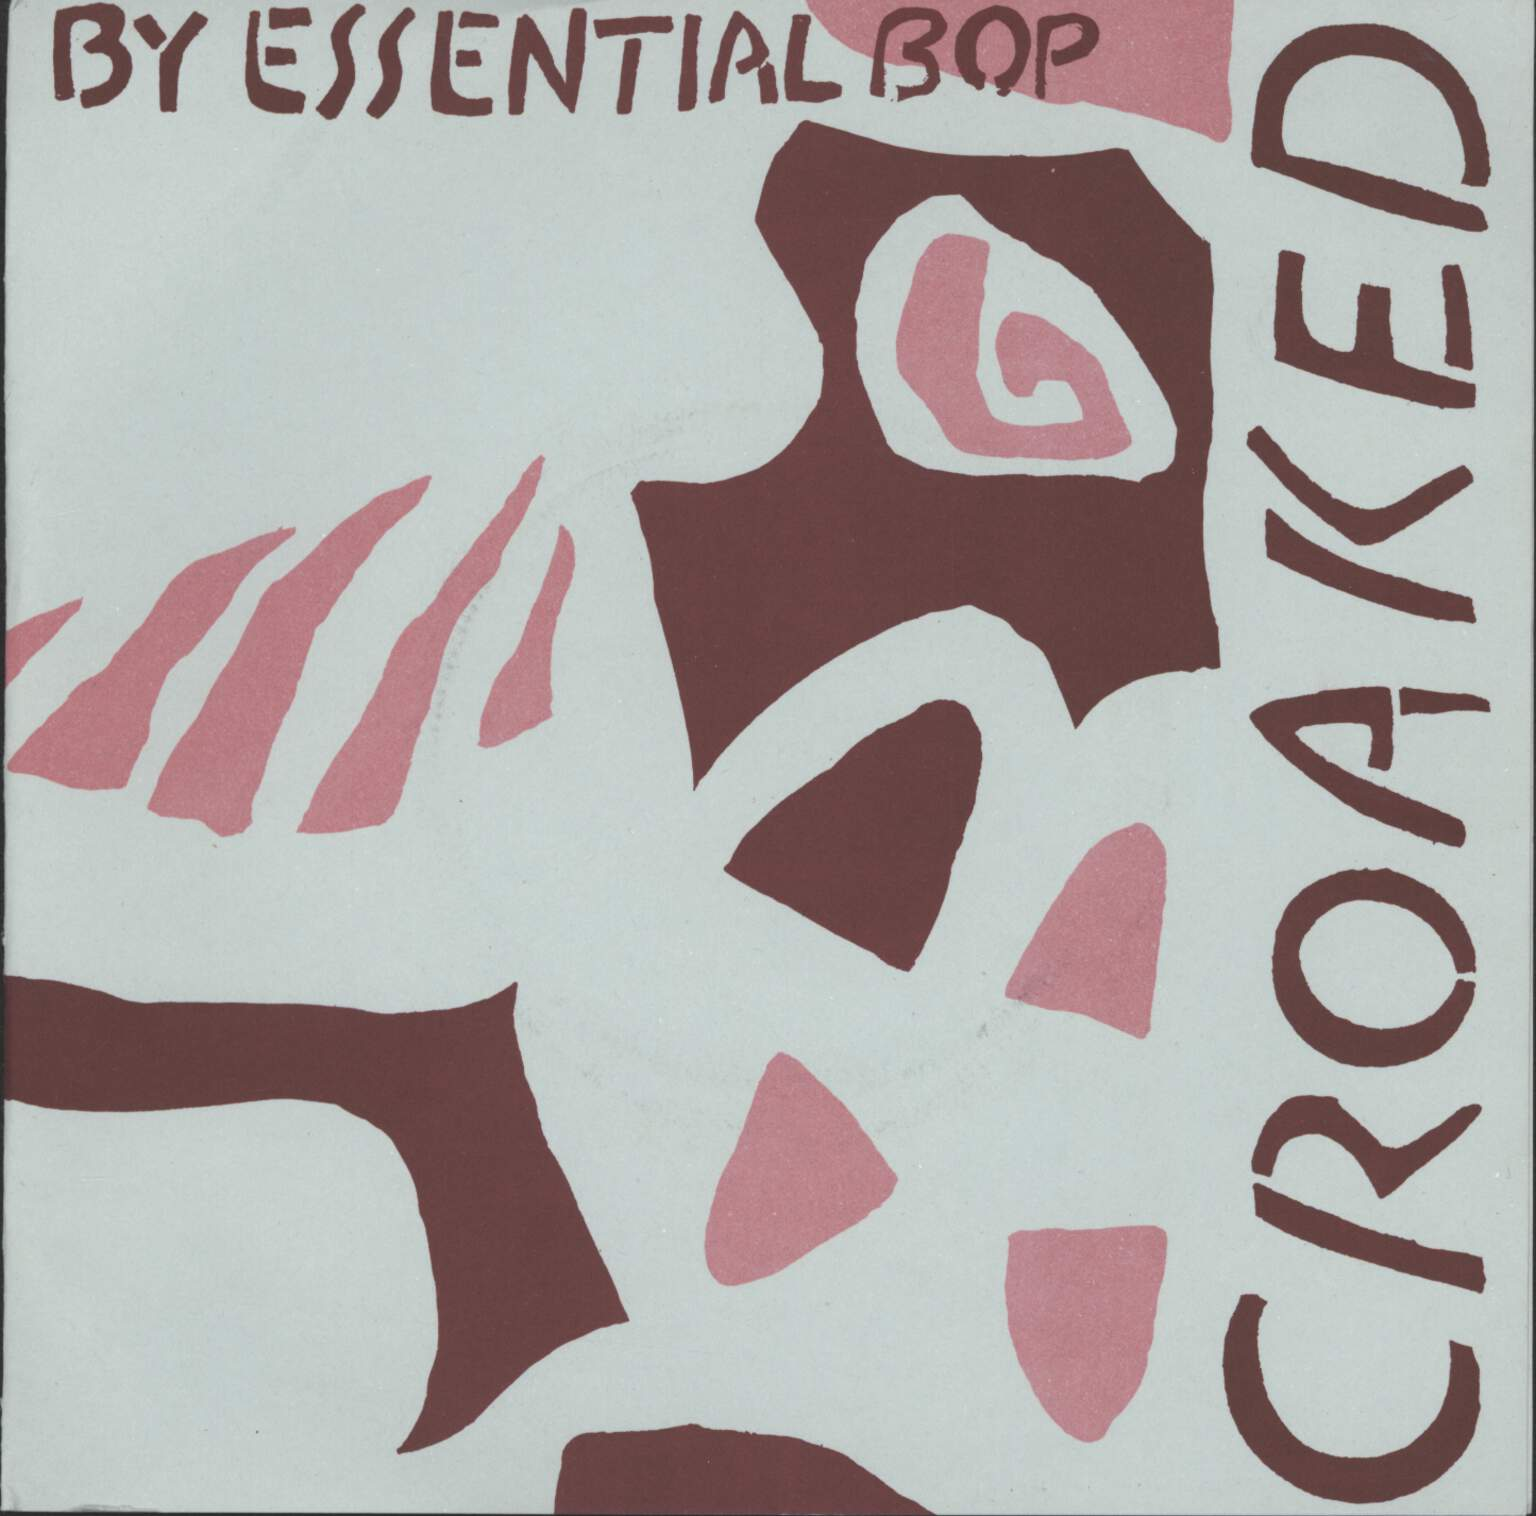 "Essential Bop: Croaked / Butler (In Running Shorts), 7"" Single (Vinyl)"